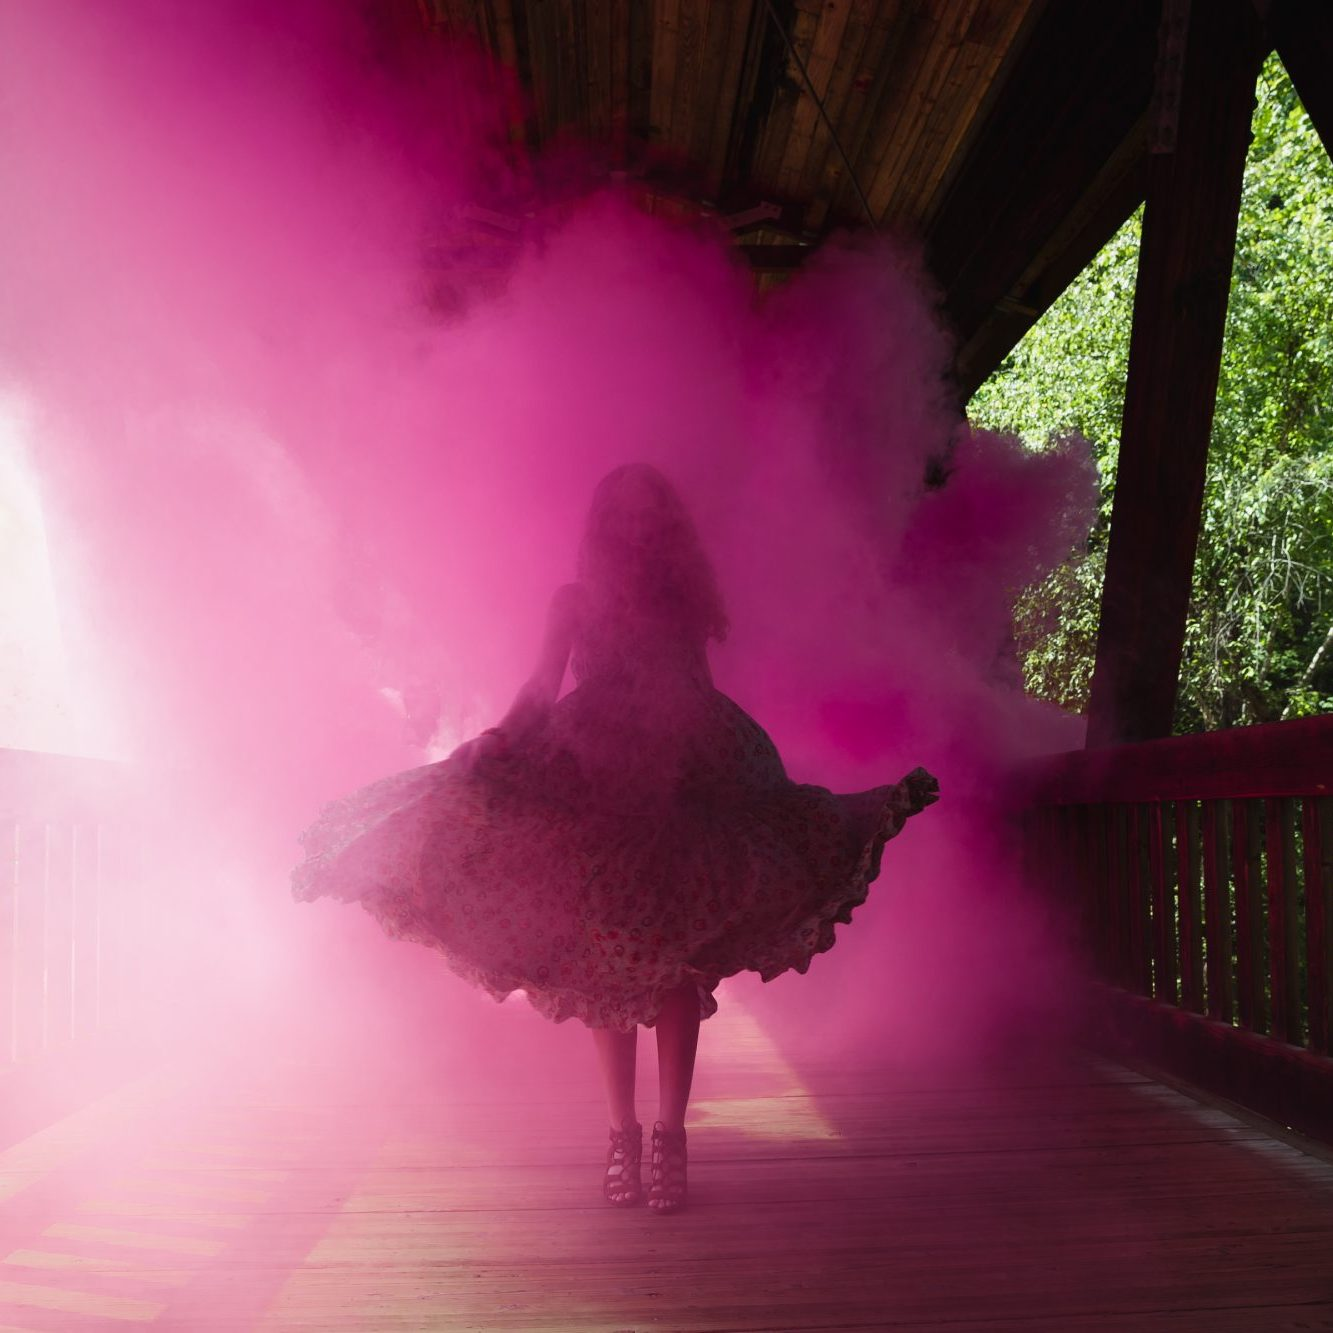 High school senior twirling in pink smoke on a covered bridge